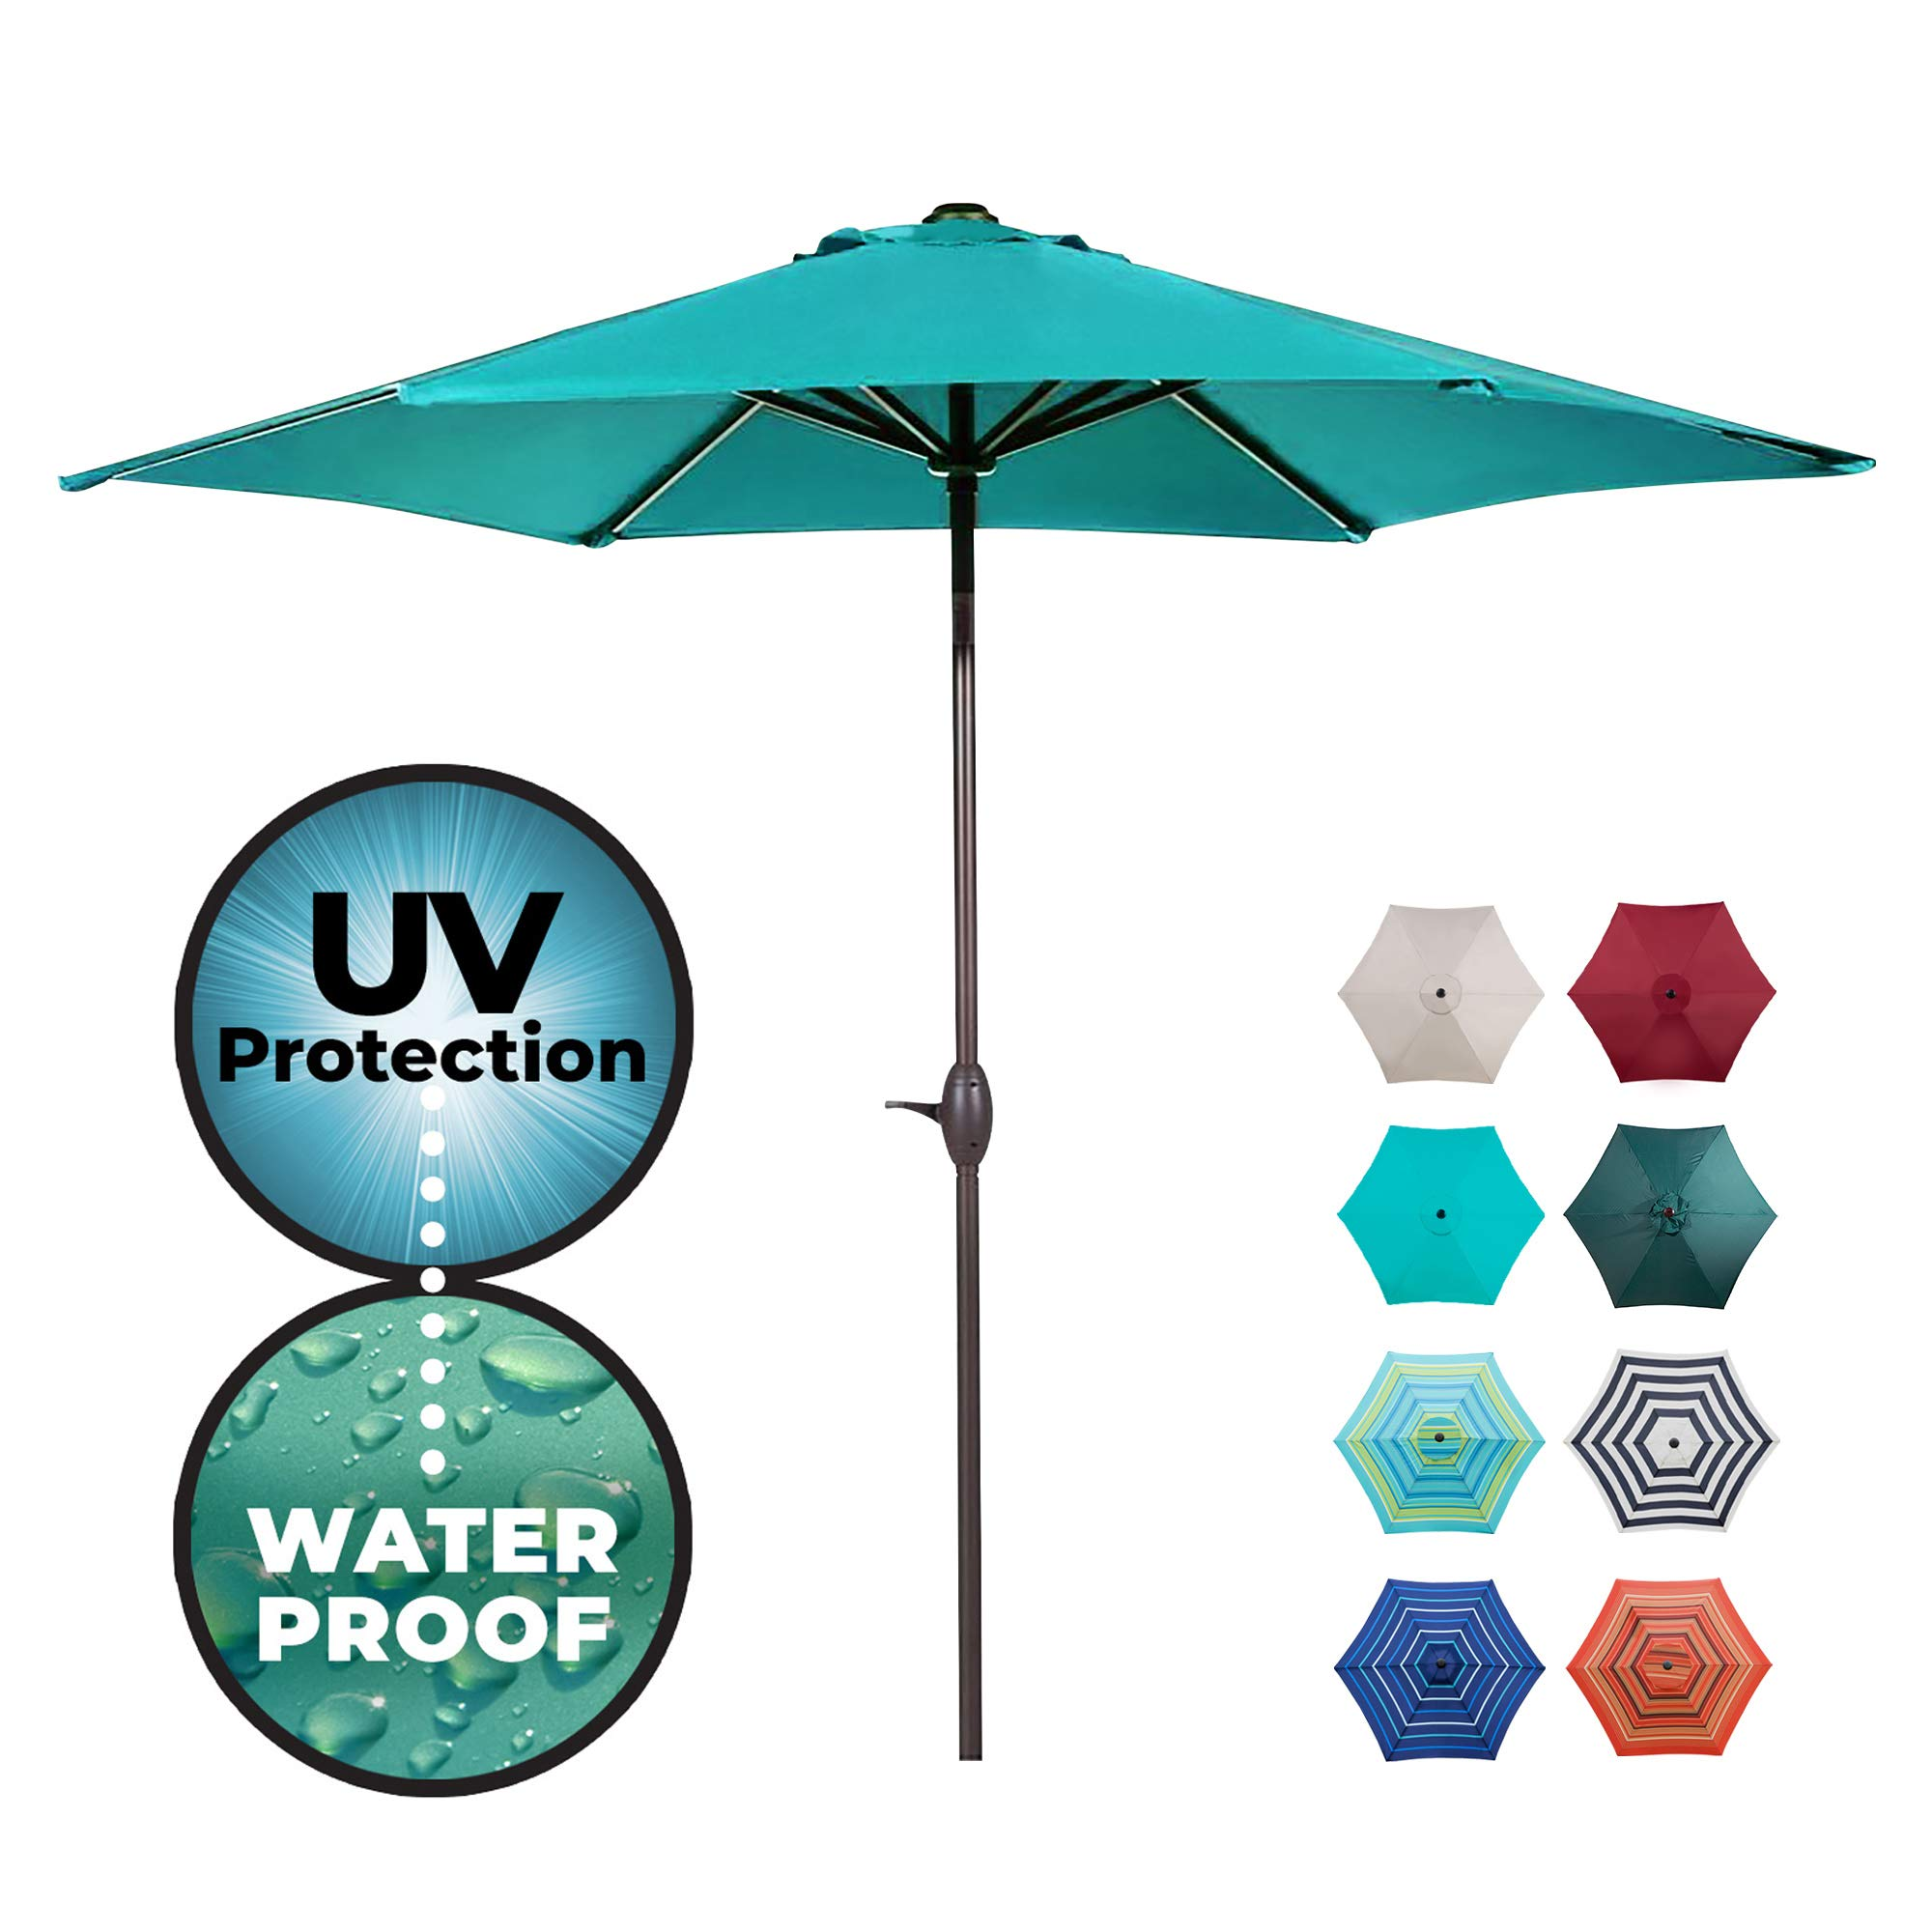 Abba Patio Outdoor Patio 9-Feet Aluminum Market Table Umbrella with Push Button Tilt and Crank, 9', Turquoise product image